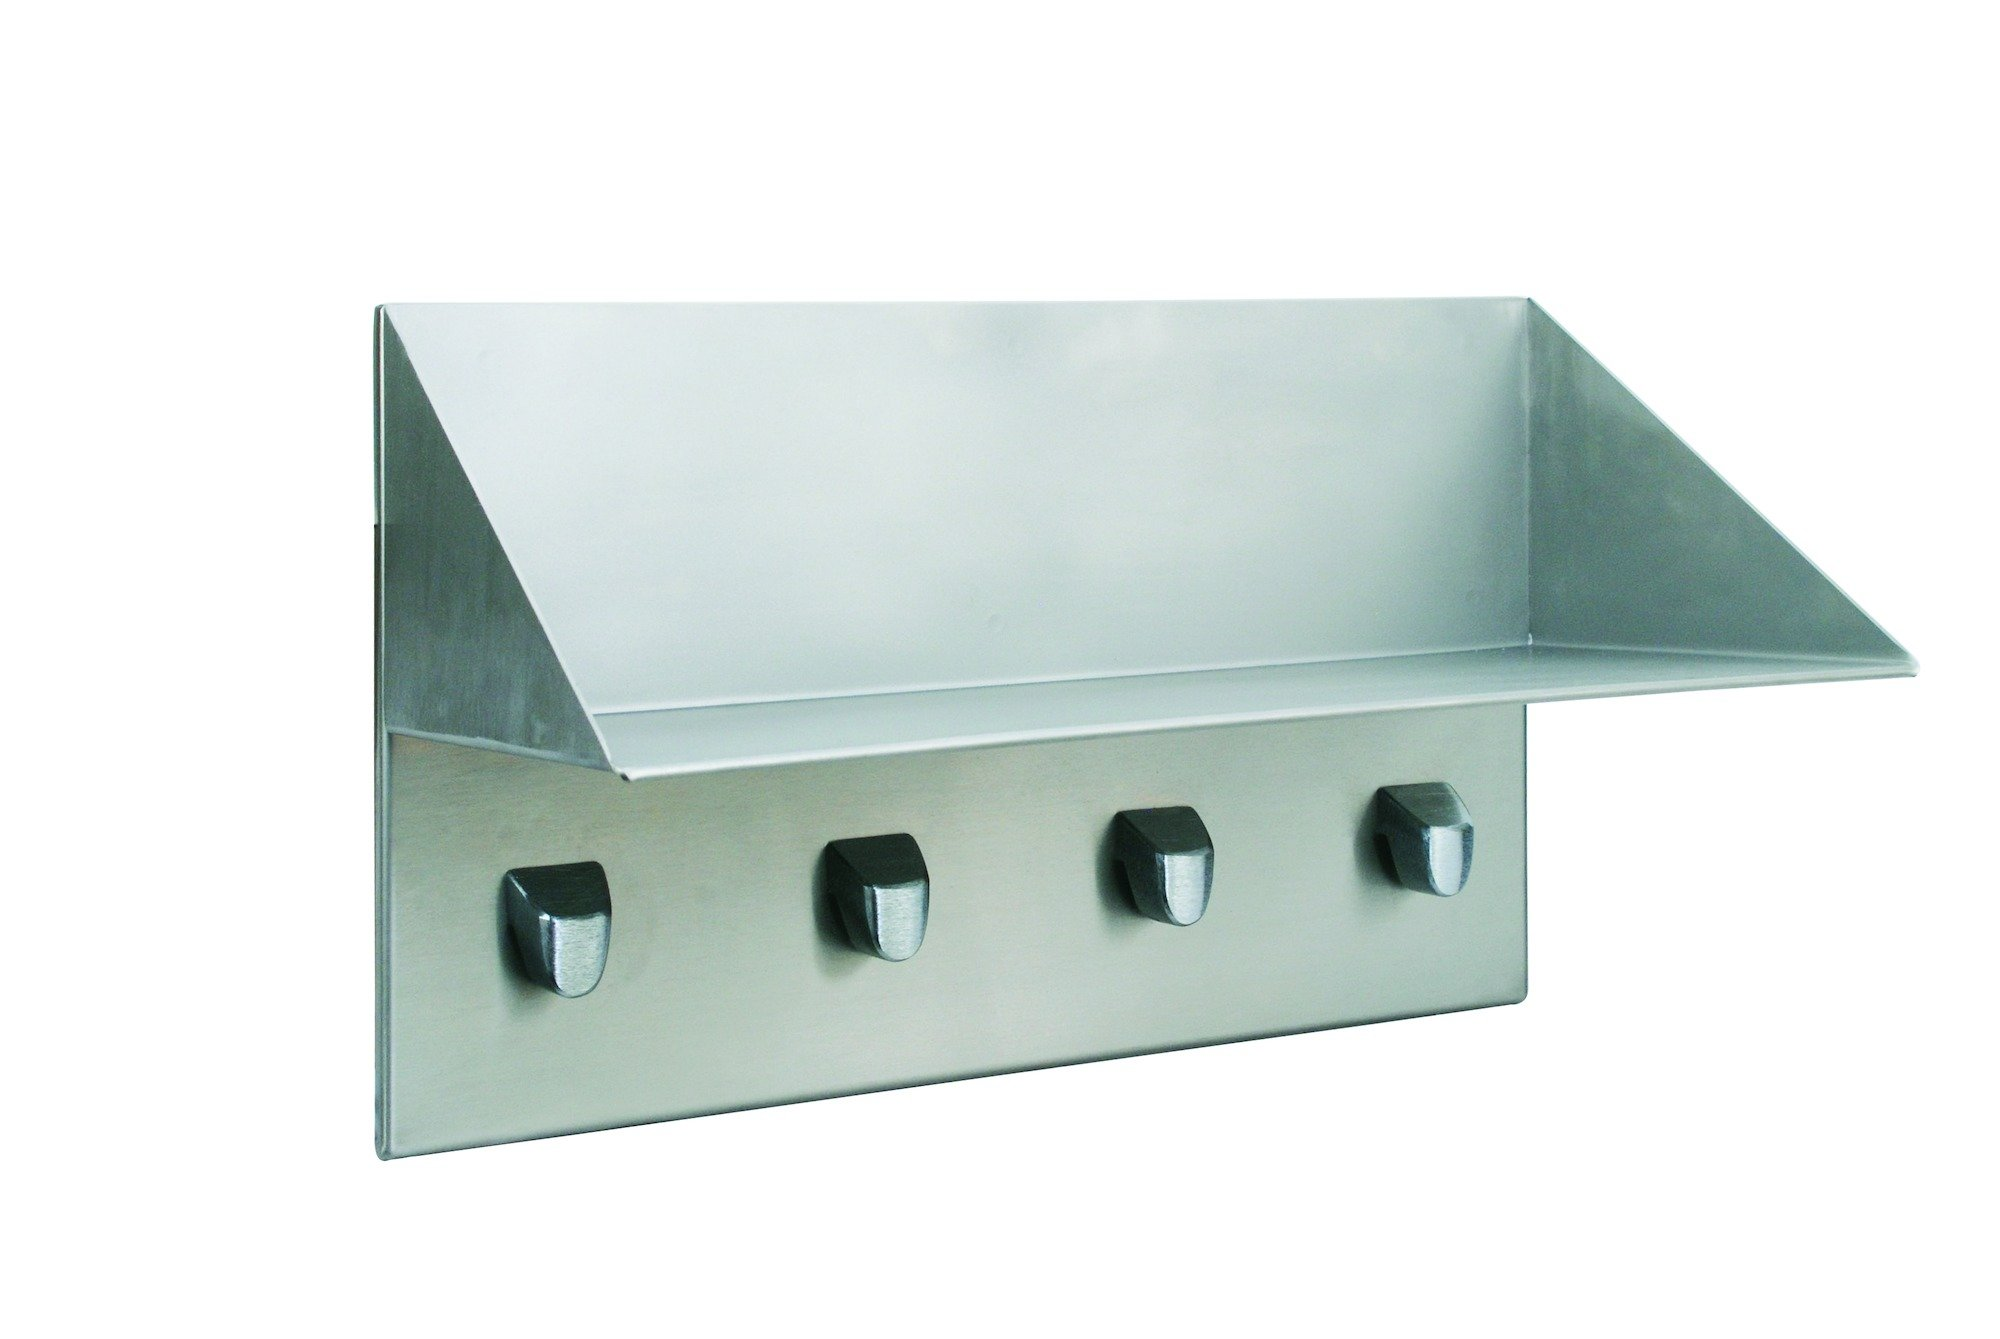 Shelves With Extras SA51-800000 - Accurate Door & Hardware, Inc